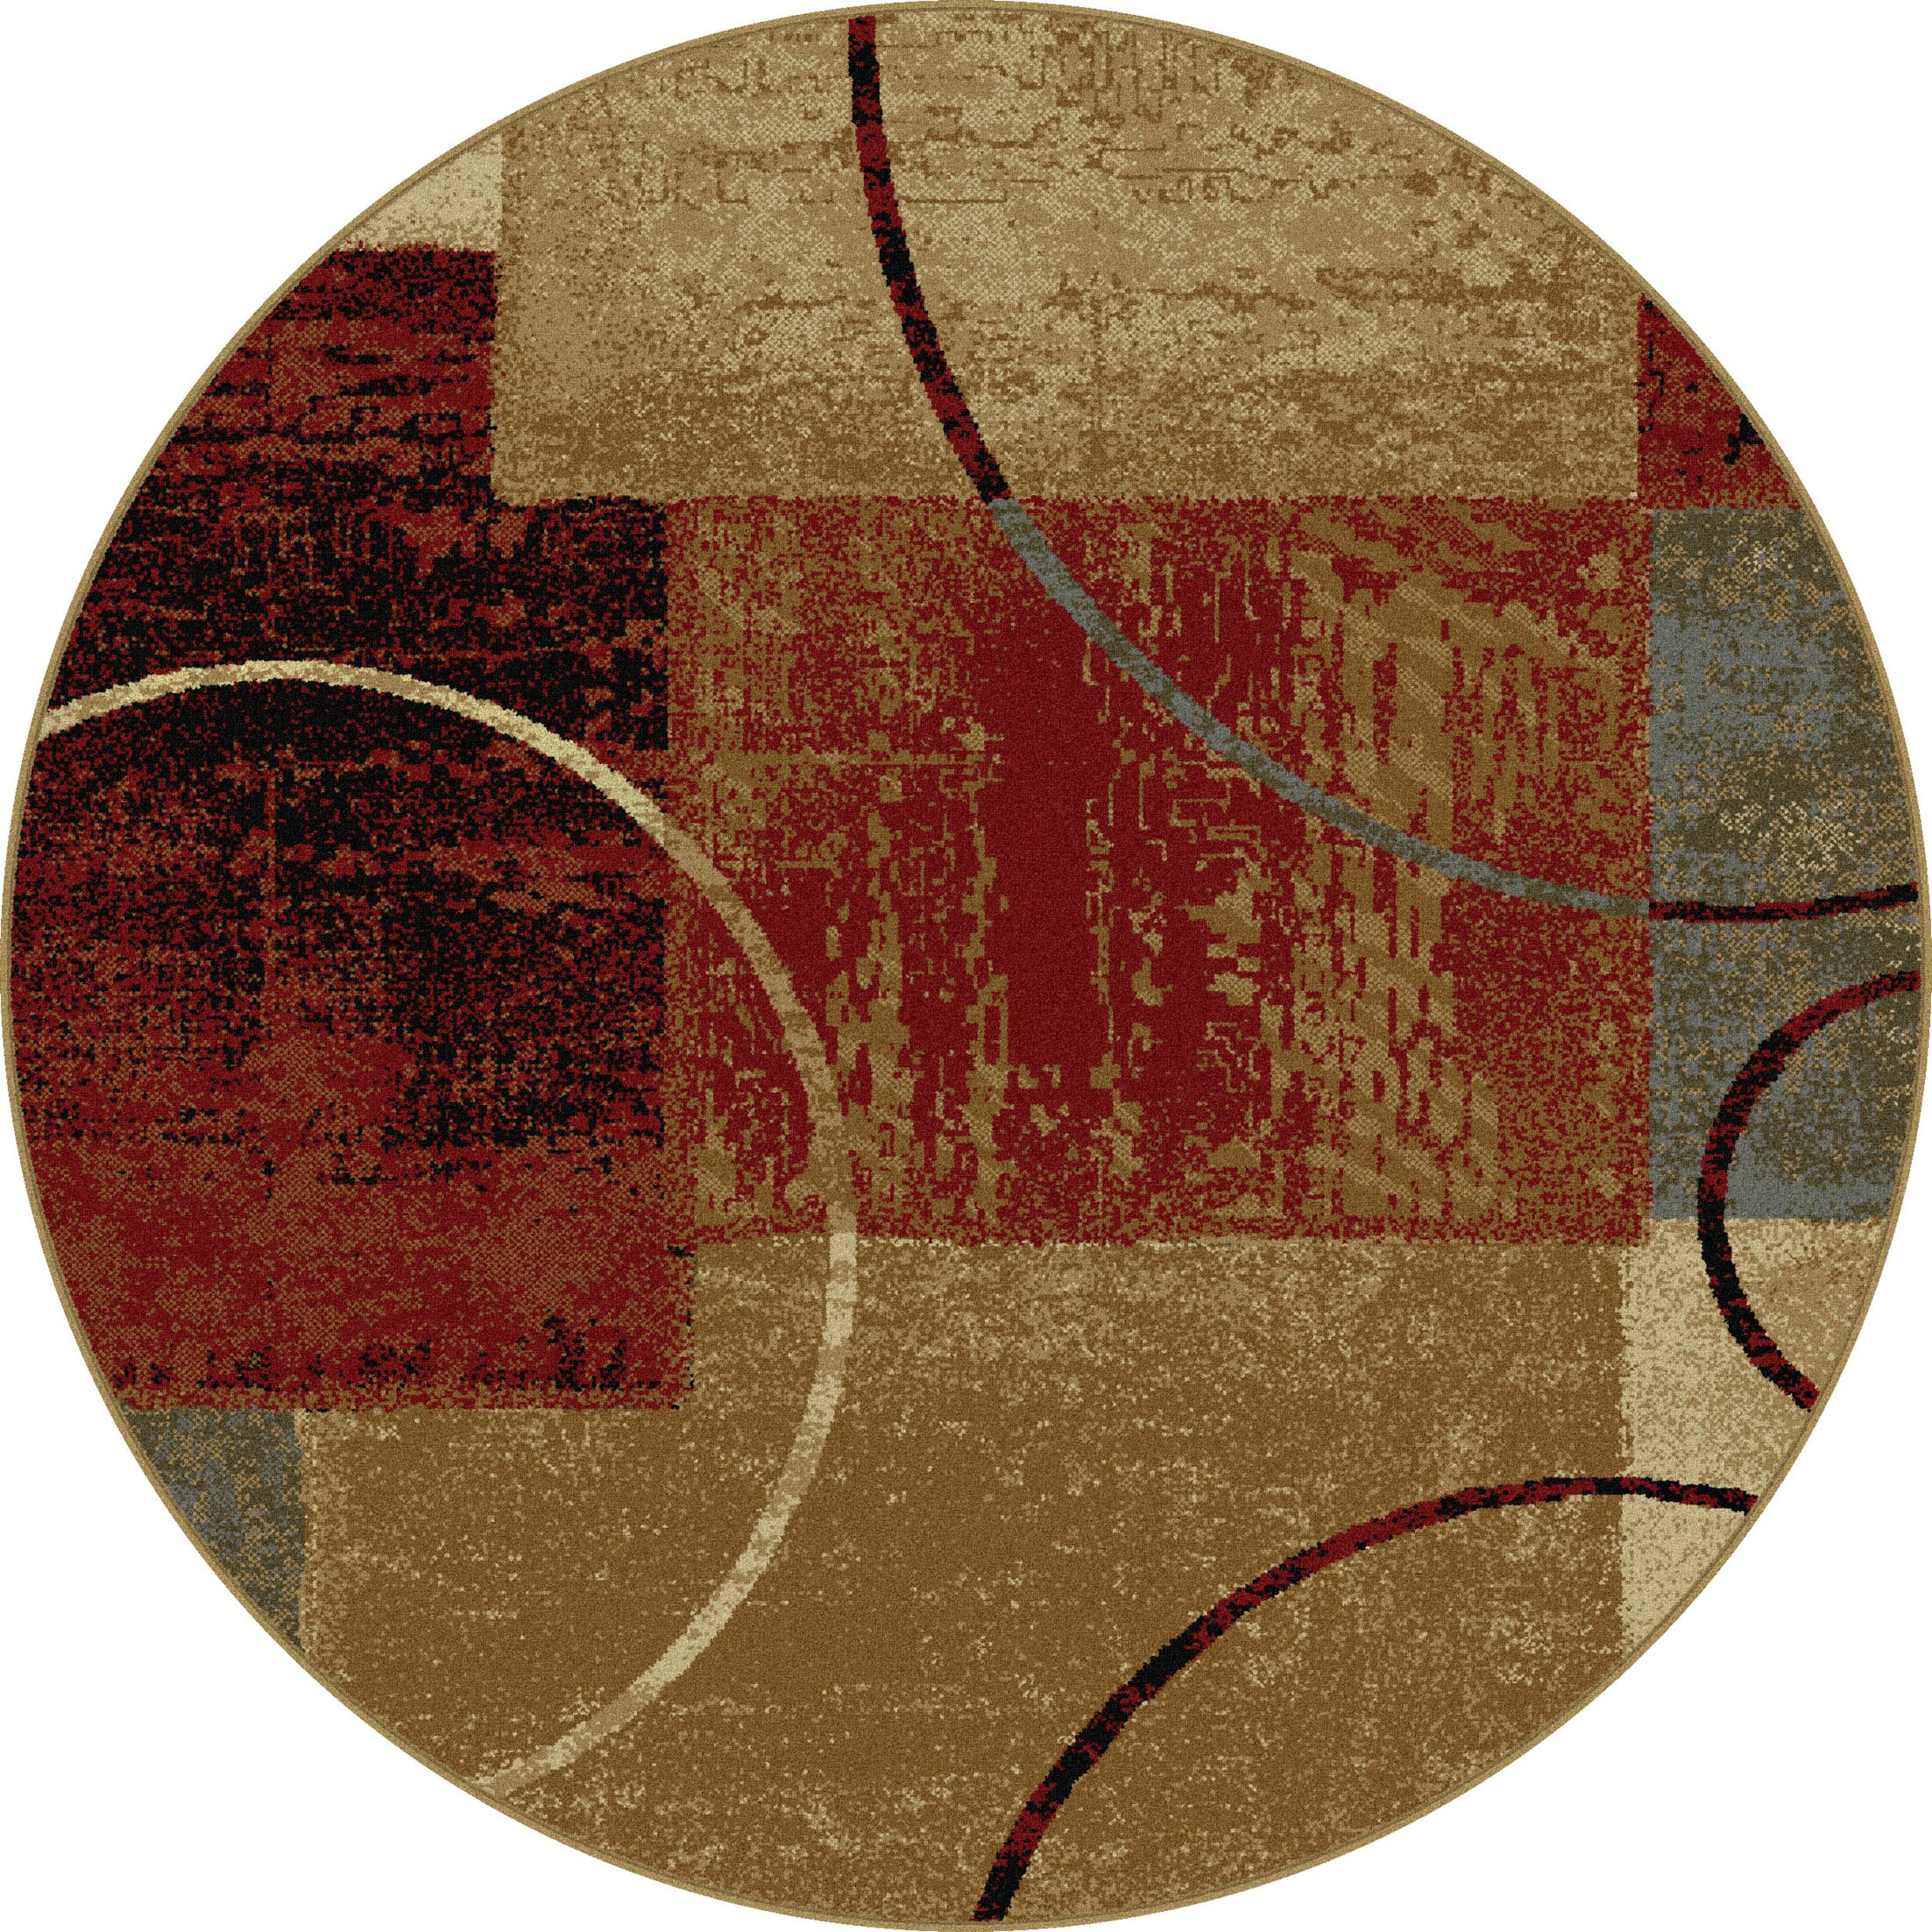 Colette Abstract Red/Brown Area Rug Rug Size: 7'10'' Round